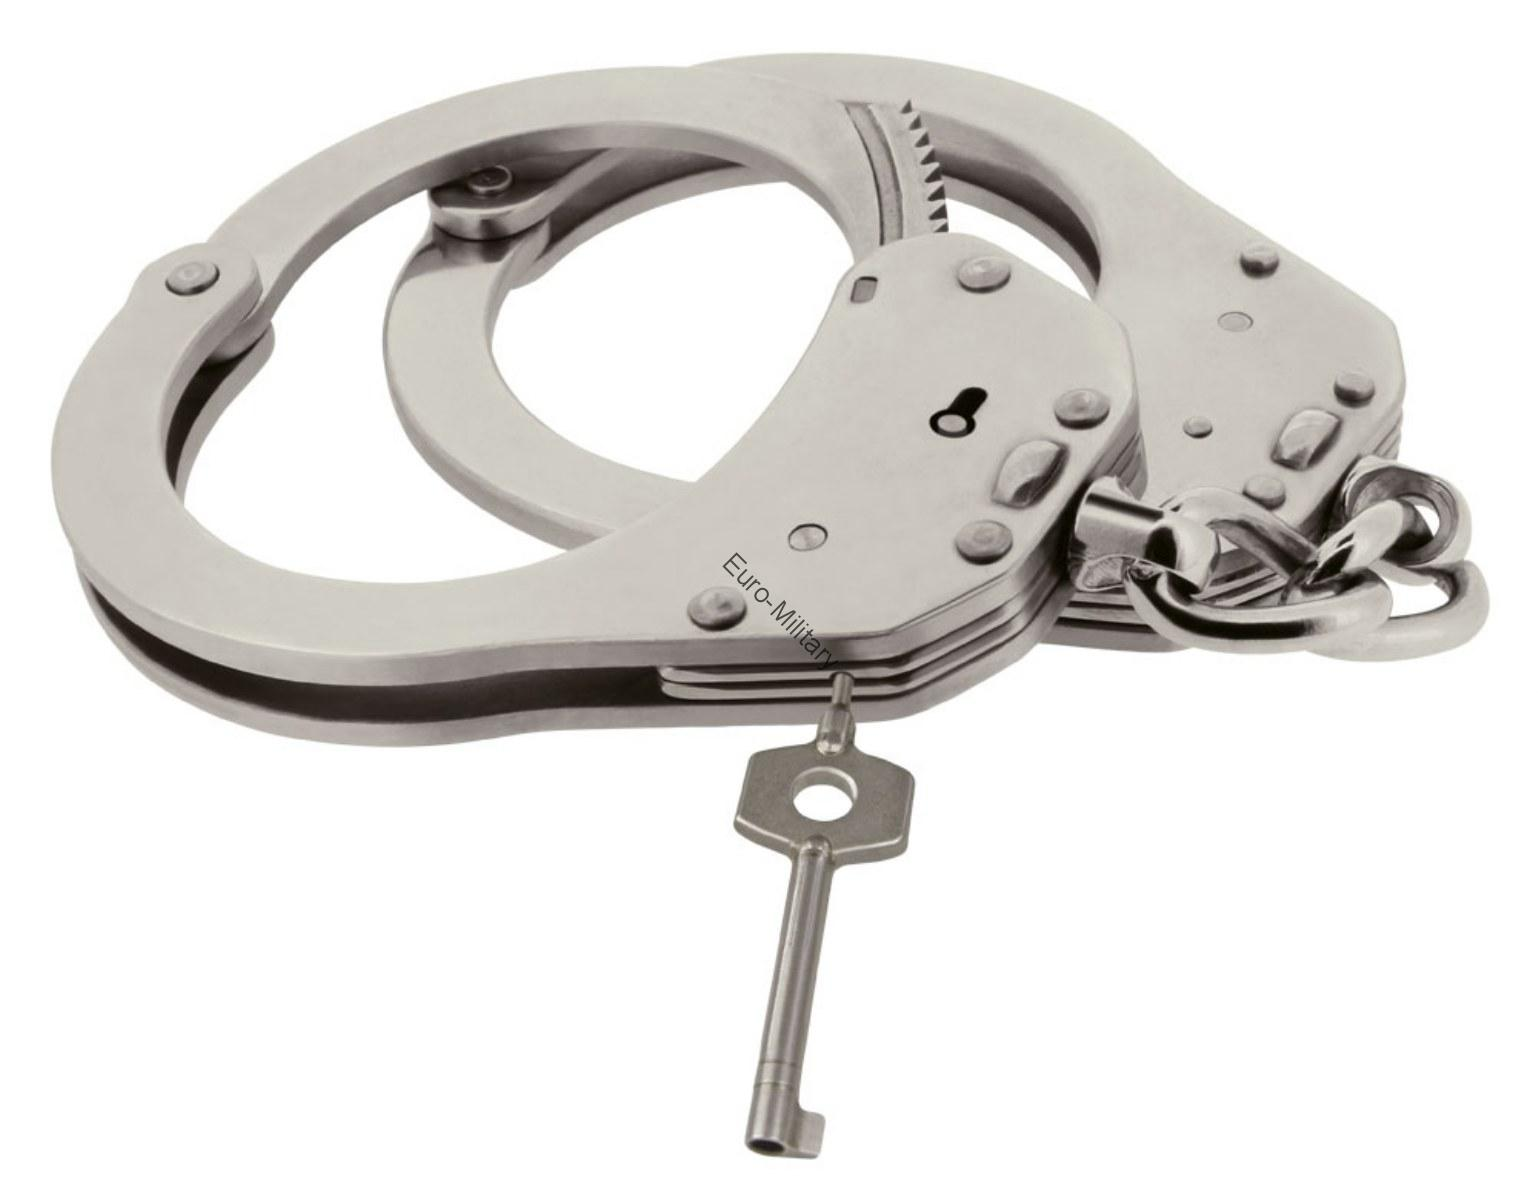 ESP® Czech Police Heavy Duty Professional Stainless Steel Handcuffs - NO TOY